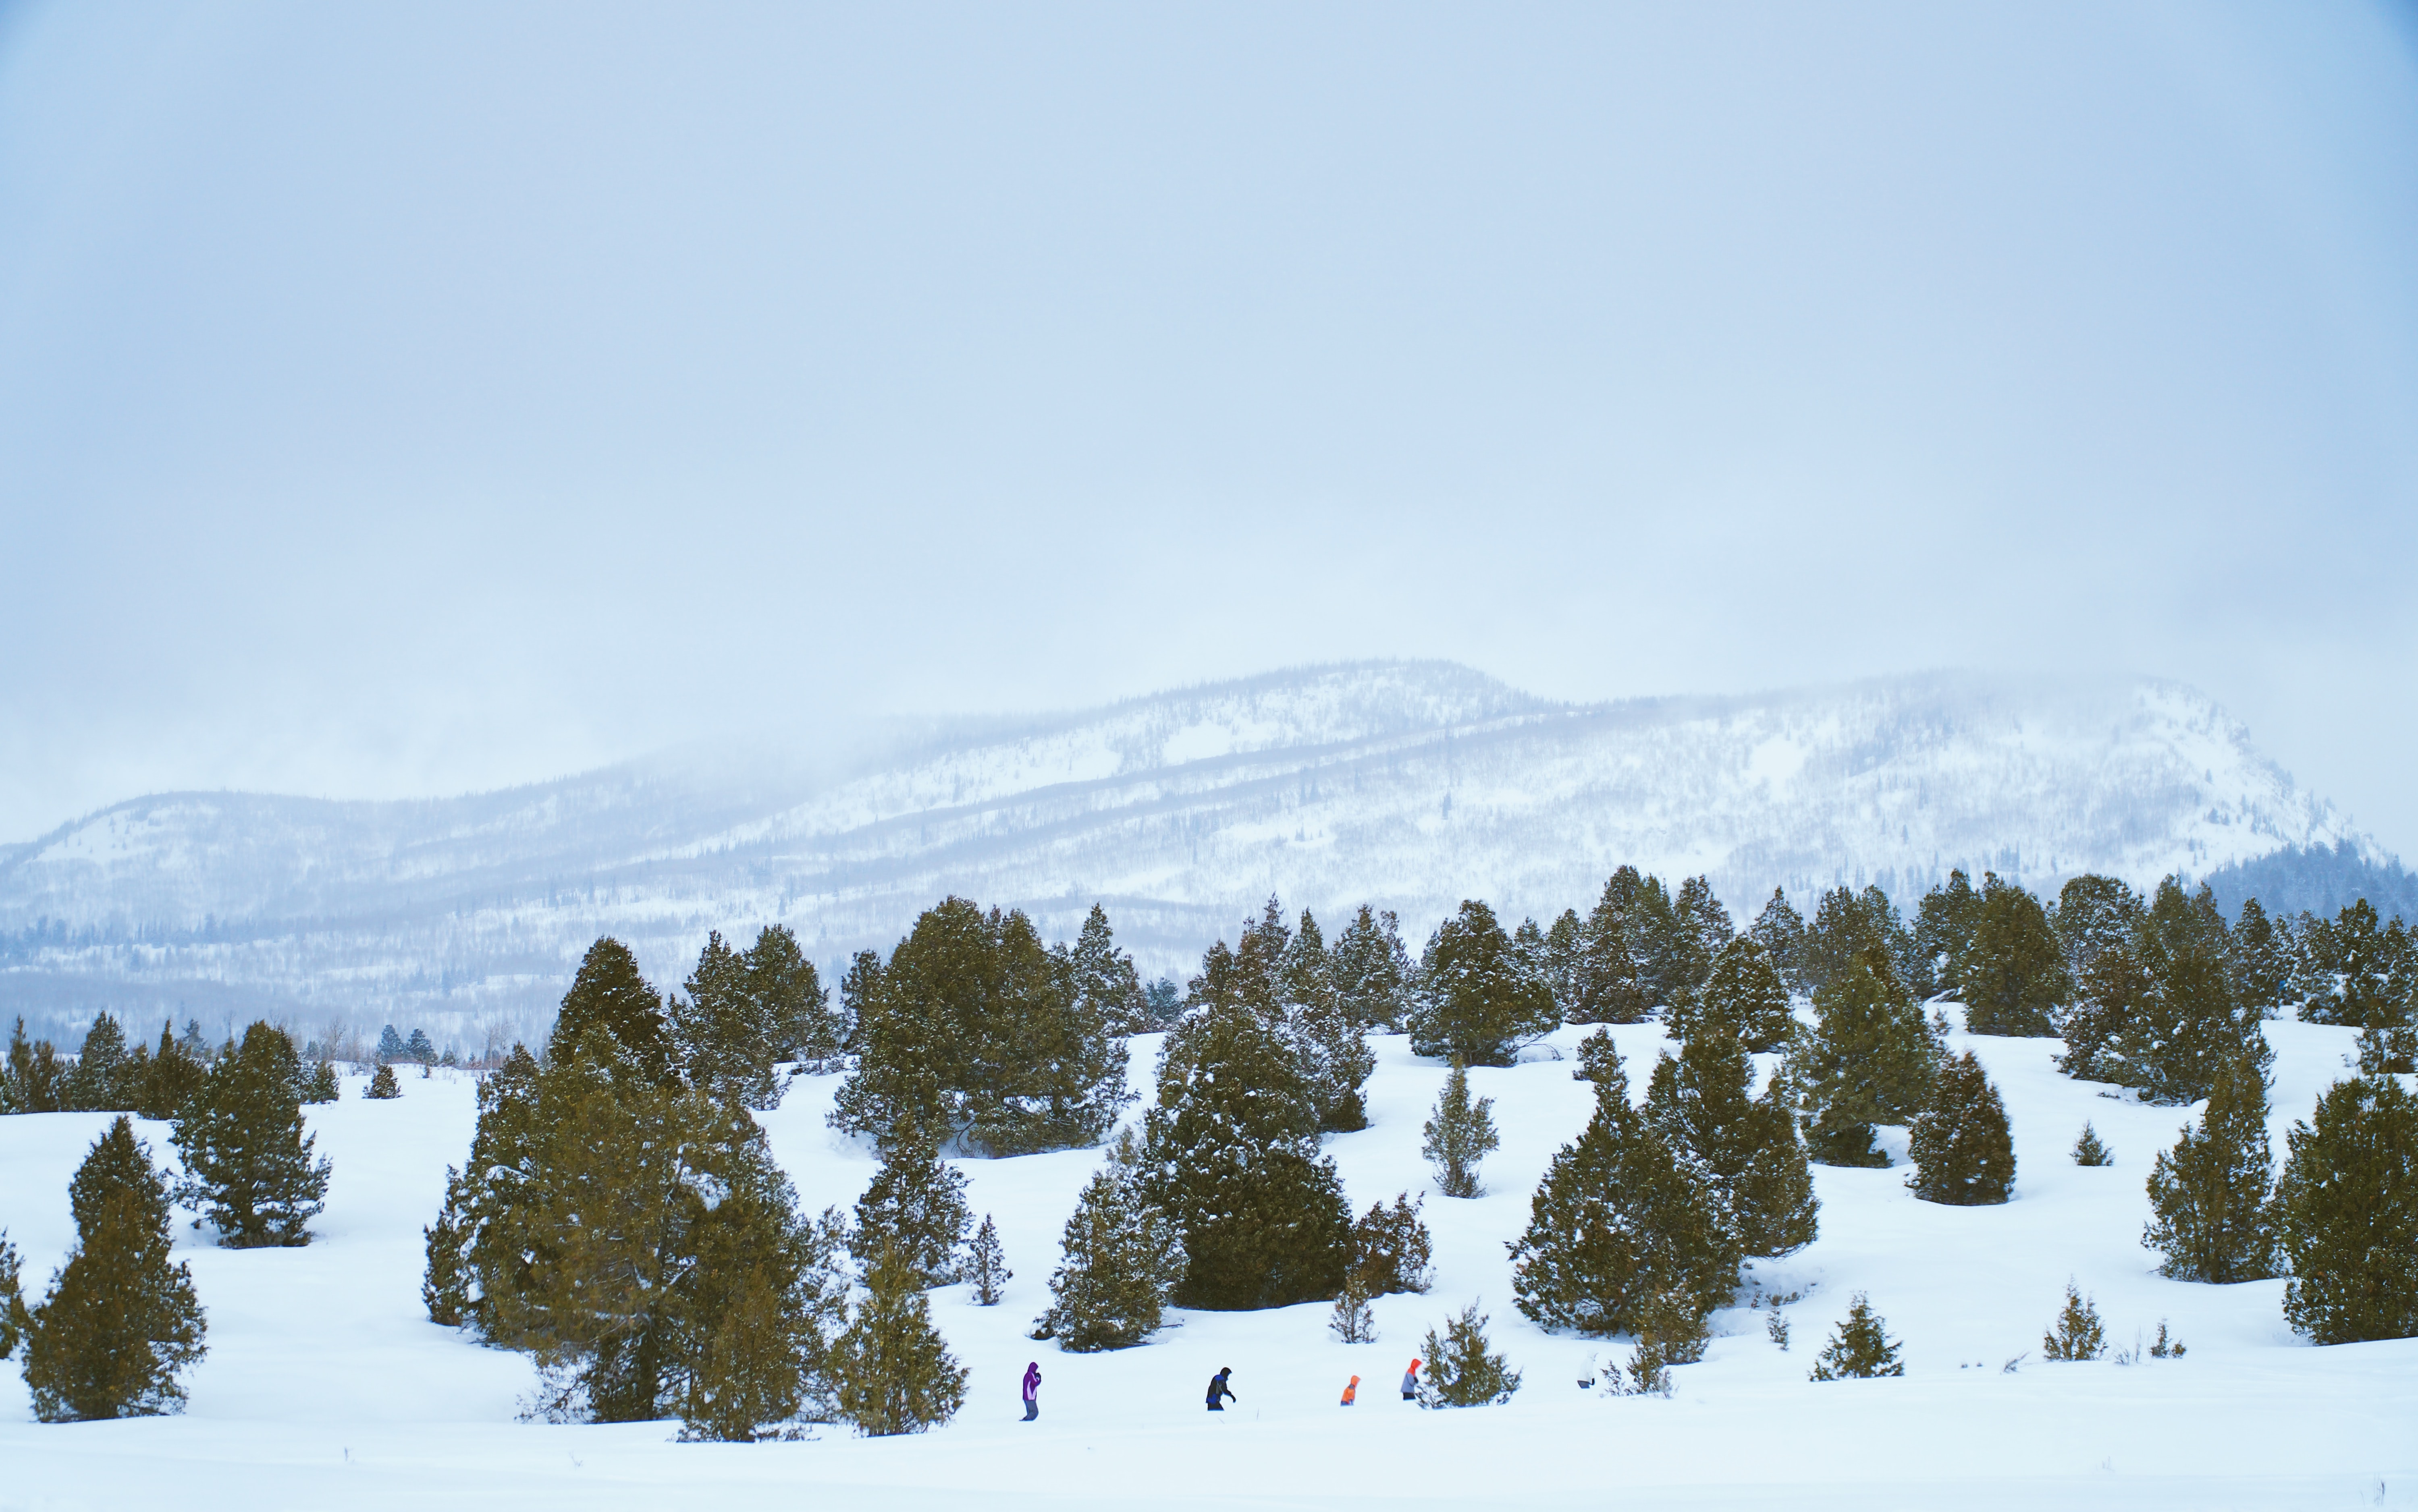 A drone shot of a spaced out forest of snow covered trees with a ski mountain in the background